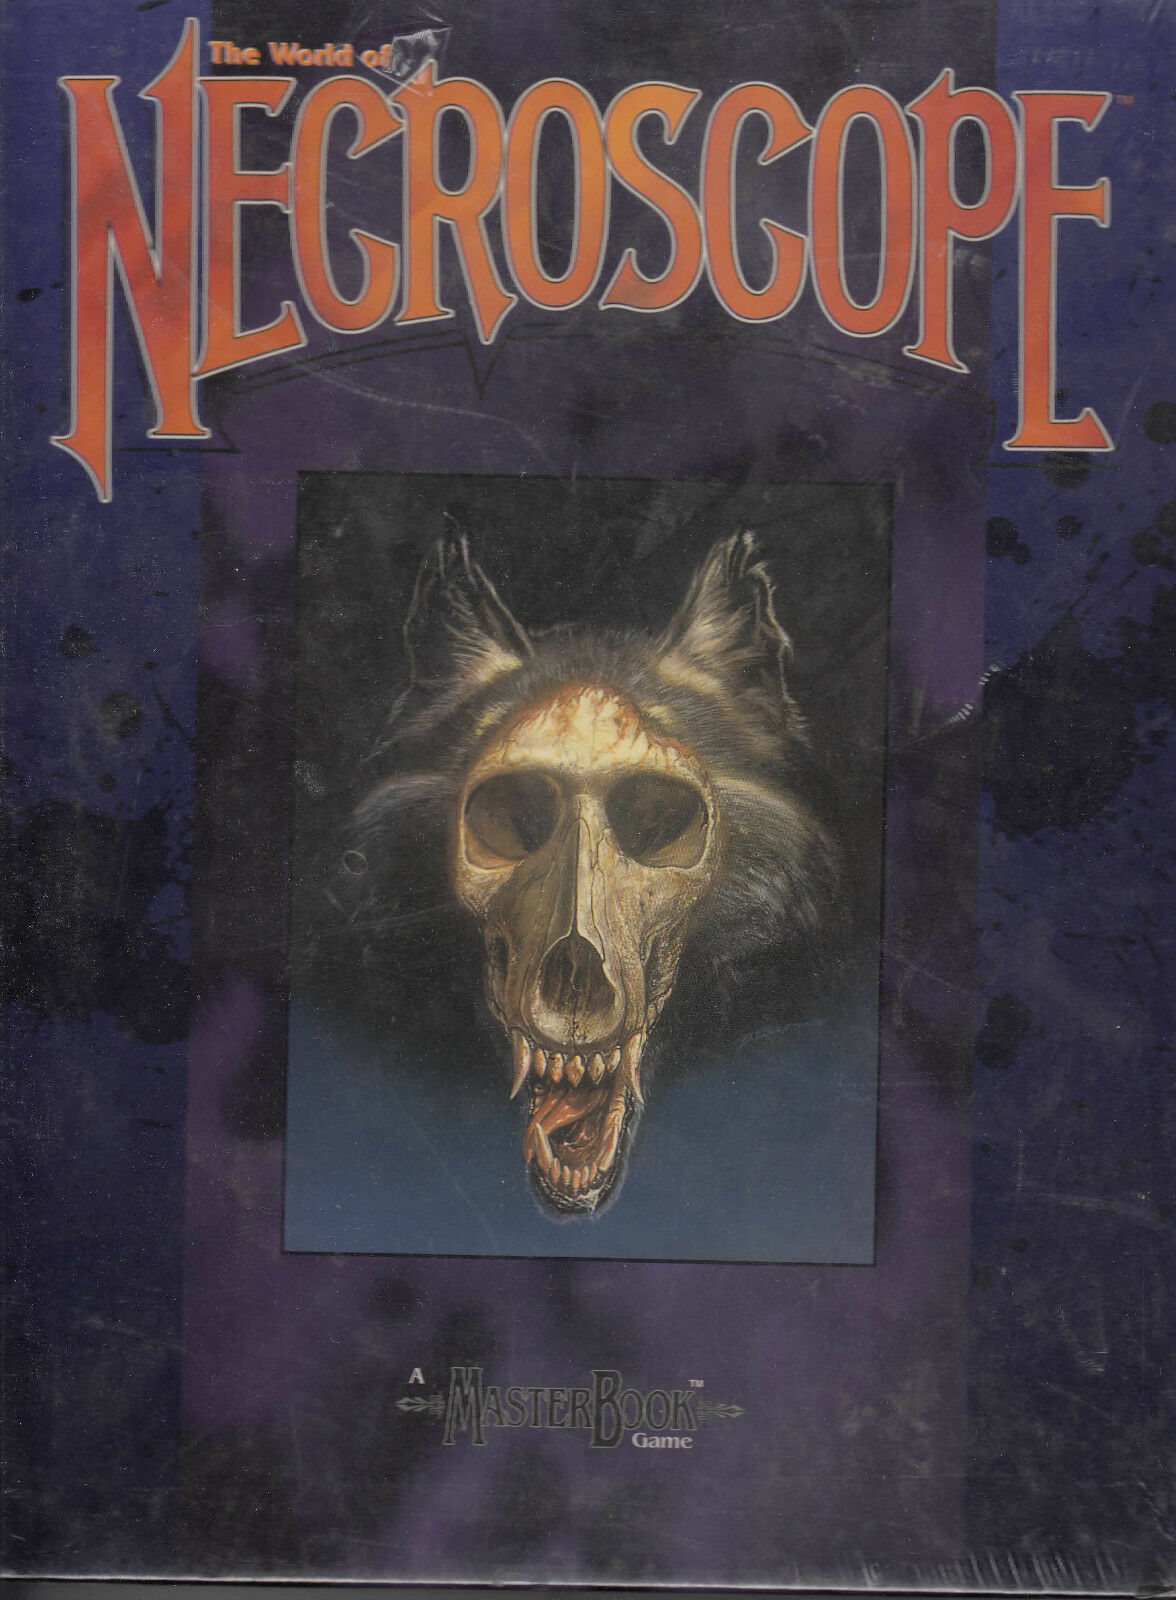 The World of Necroscope - WEST WEST WEST END GAMES - WEG25000 - RPG ENG NEW IN WRAPPED BOX 51401e